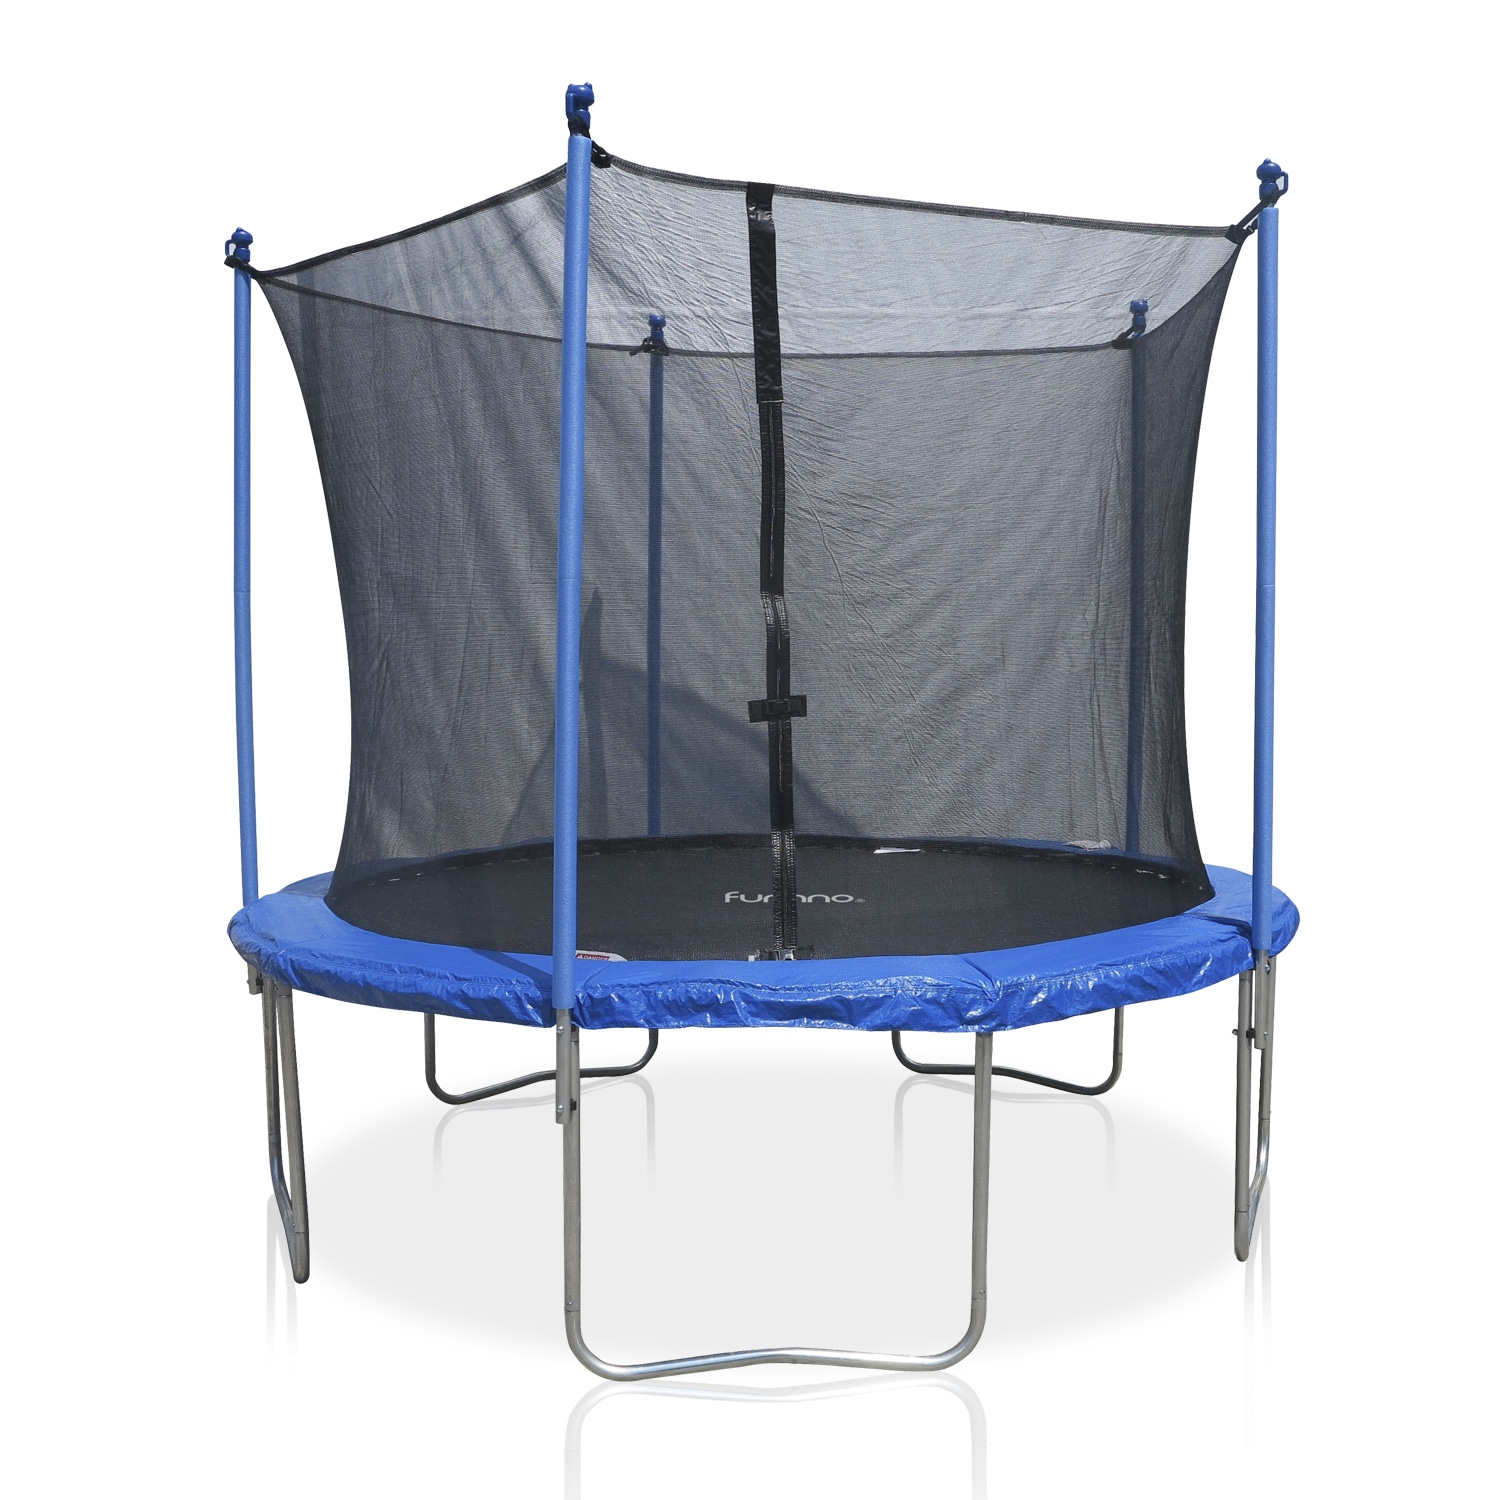 Furinno 10-foot Trampoline with Enclosure (10 Ft.), Silve...